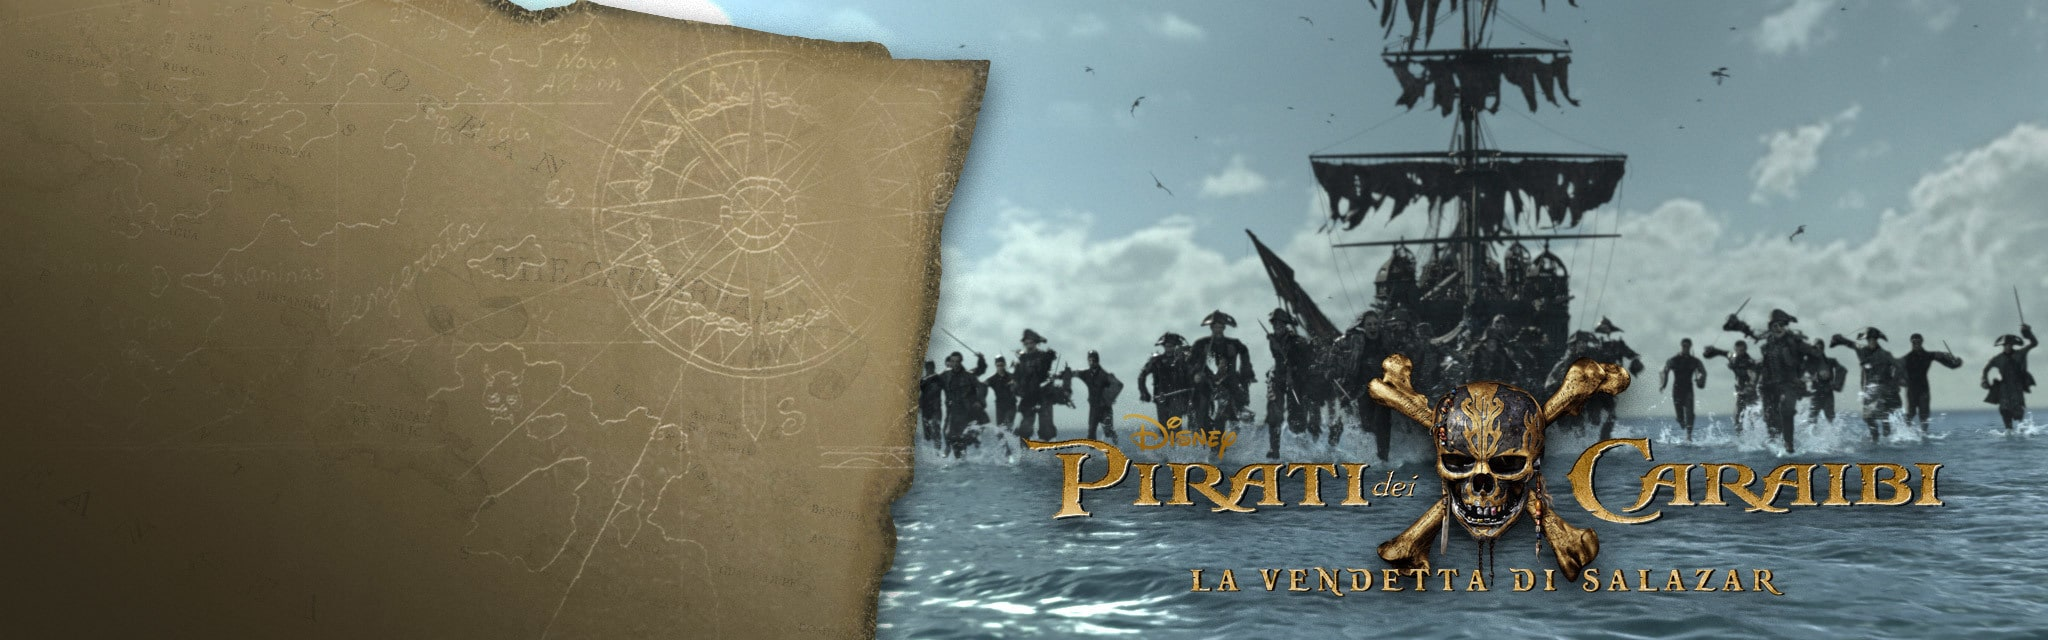 POTC5 Hero Book Tickets - pirati dei caraibi 5